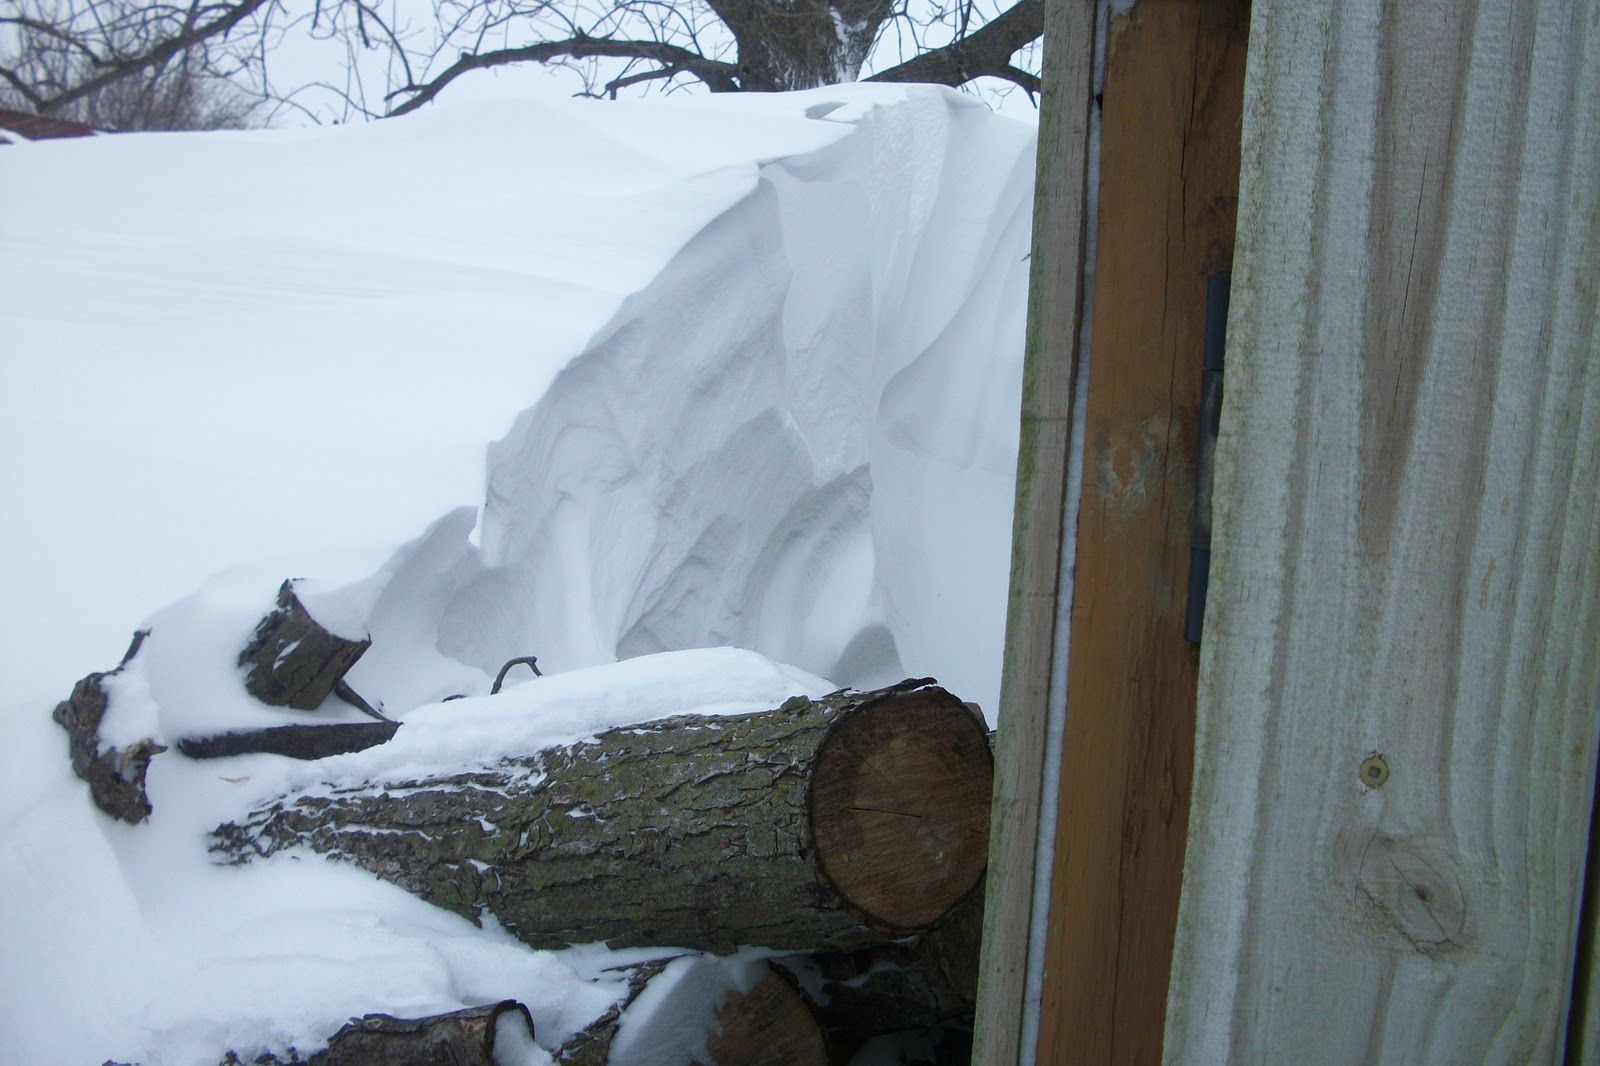 . And why should I be so worried about getting into the wood pile #3E688D